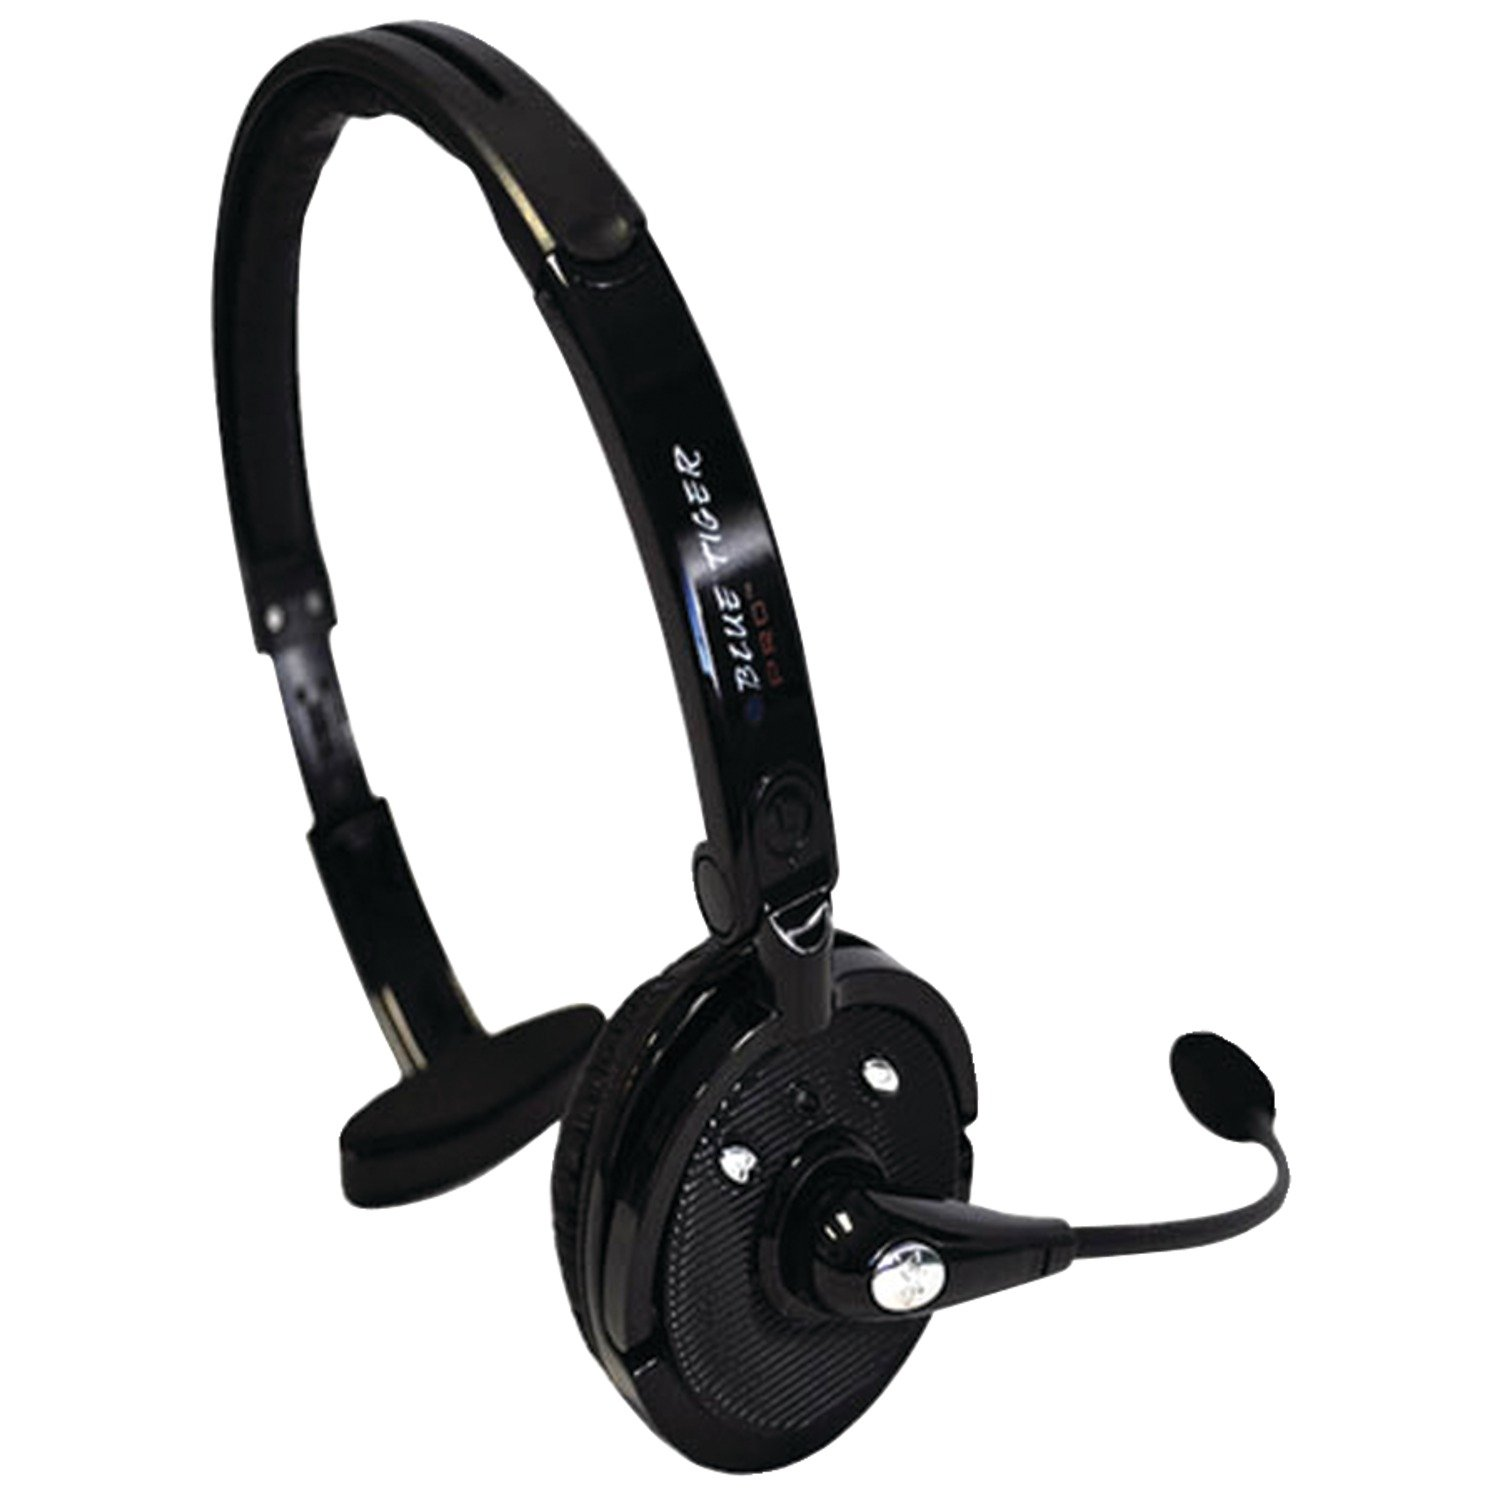 Blue Tiger Trucking Accessories - Pro Wireless Bluetooth Headphones – Premium Professional Truckers' Noise Cancelling Headset with Microphone – Dual Device Connection with No Wires - 20 Hour Talk Time – Black